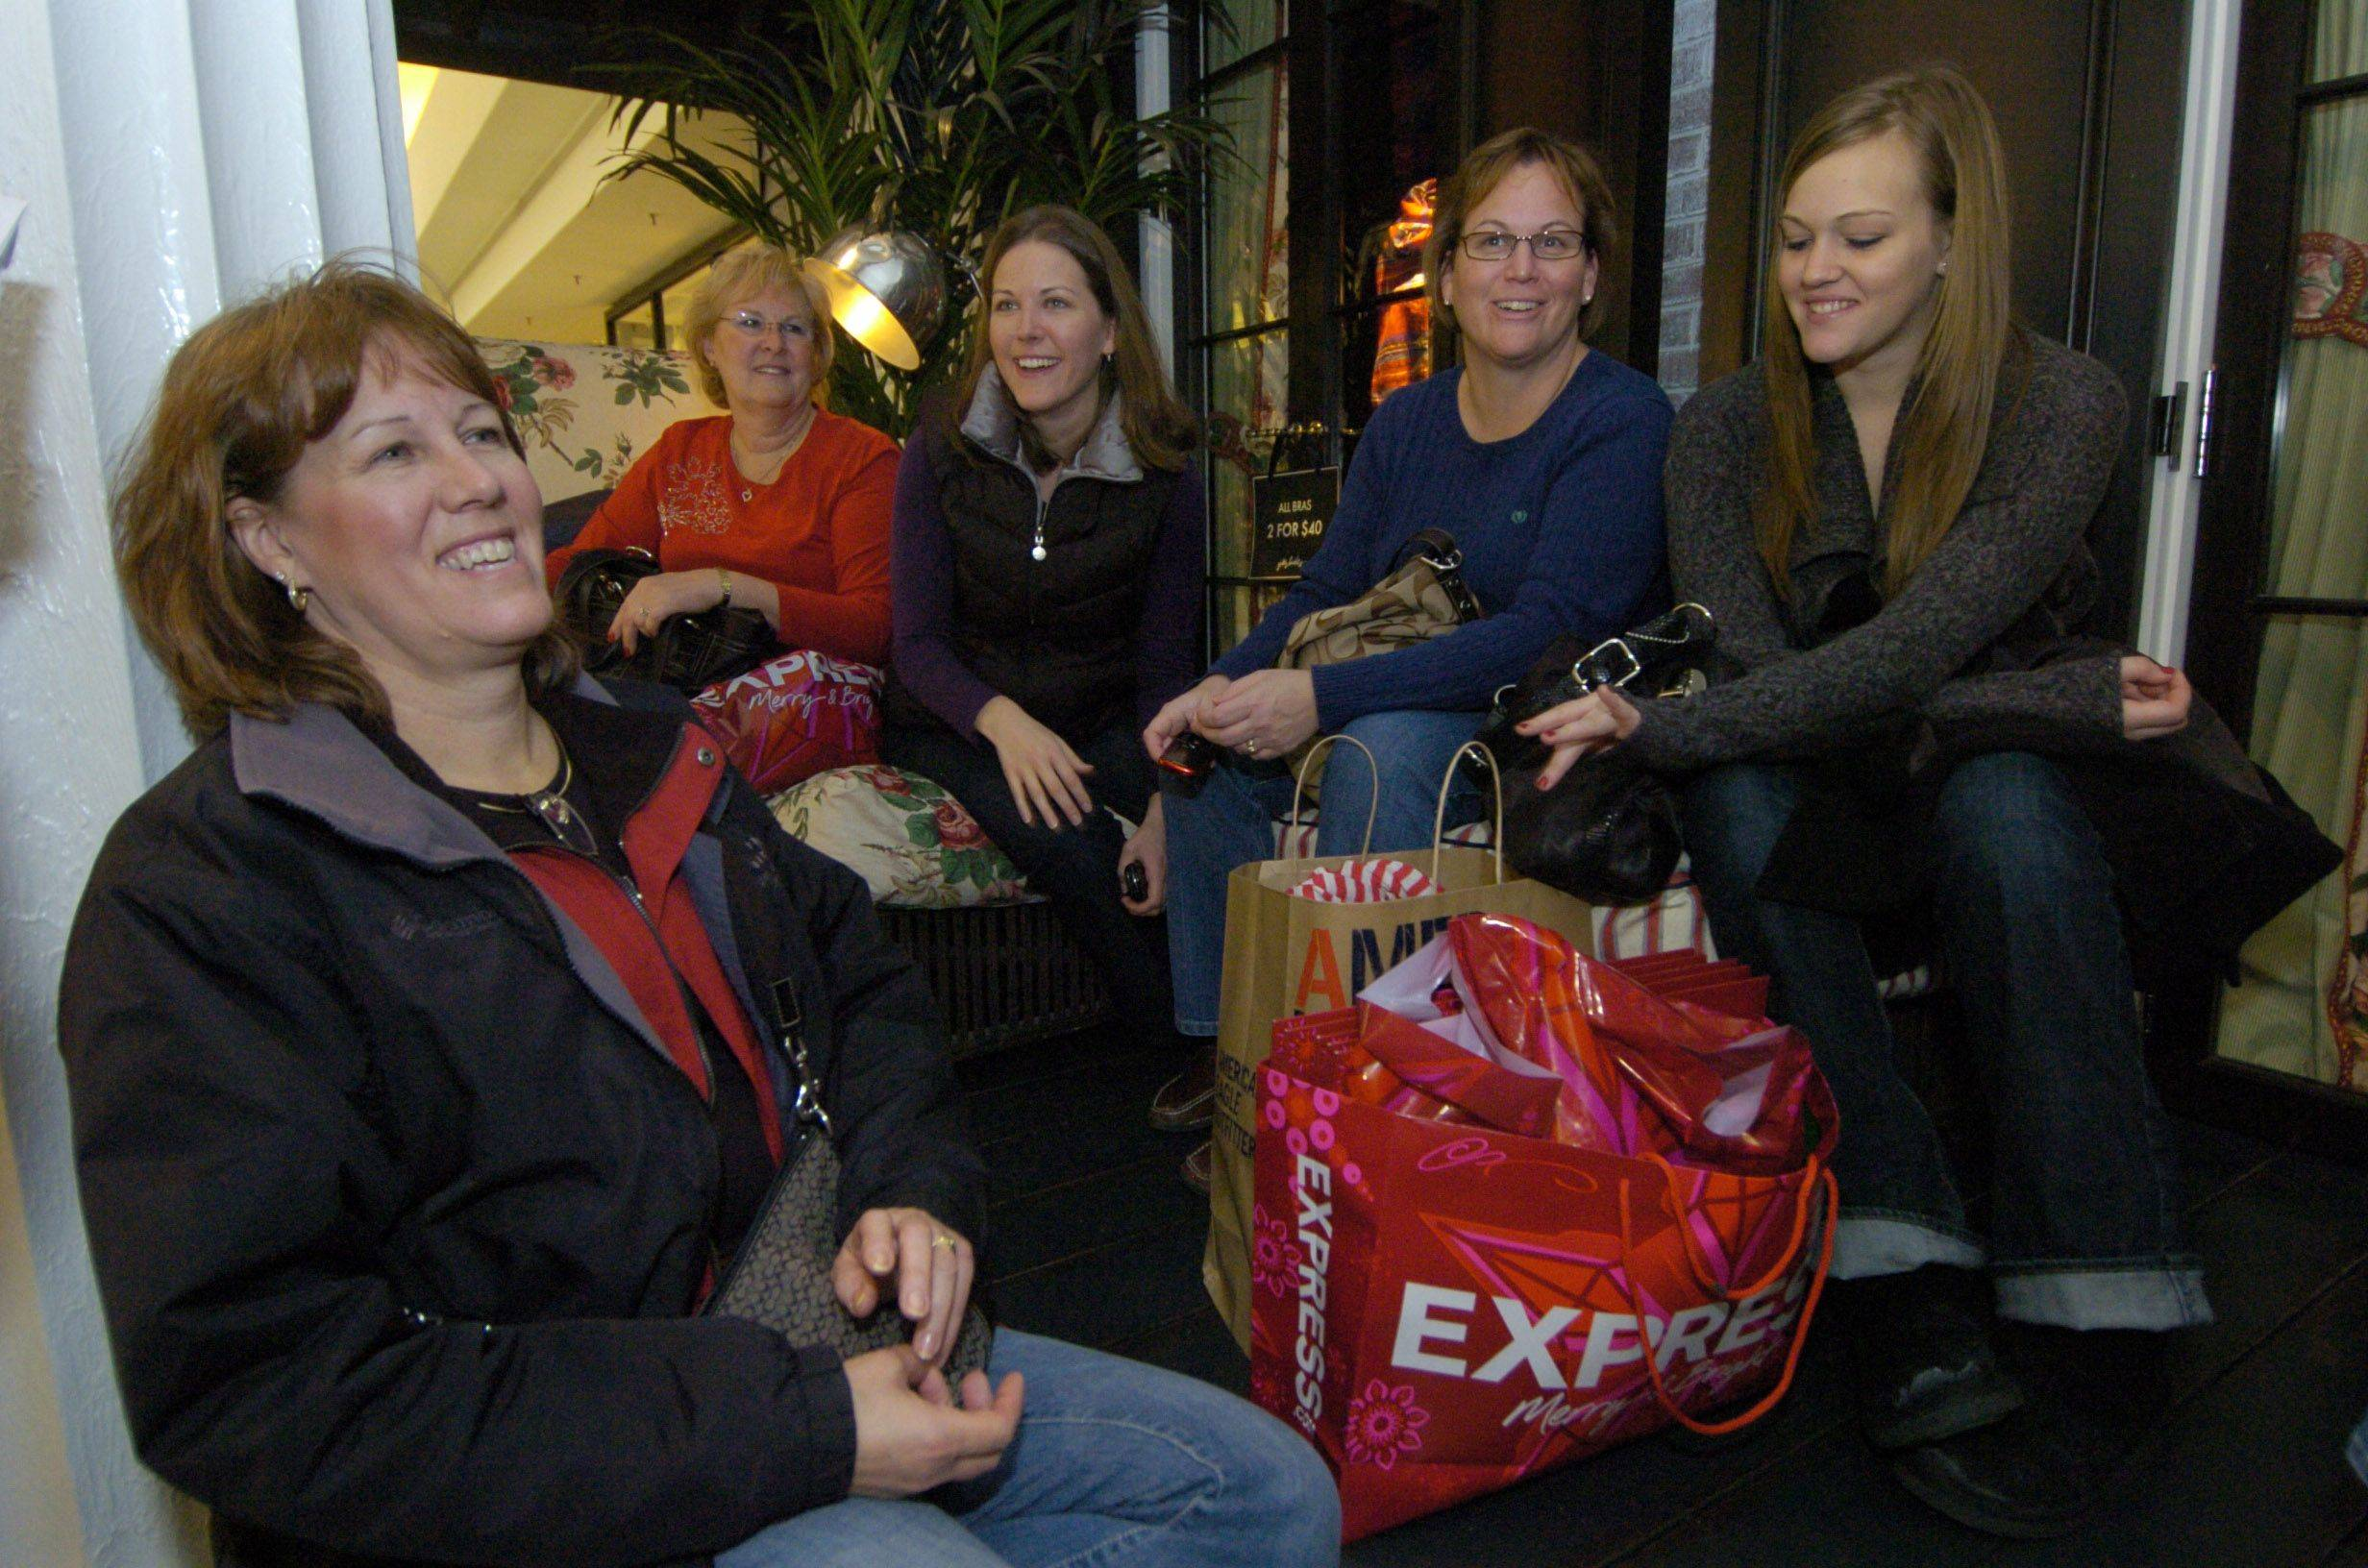 Sue Black of Arlington Heights, from left, Sharon Kilcoyne of Gurnee, Kristen Black-England of Chicago, Sheryl Wiegel of Gurnee, and Kim black of Arlington Heights take a break from shopping at Woodfield mall.